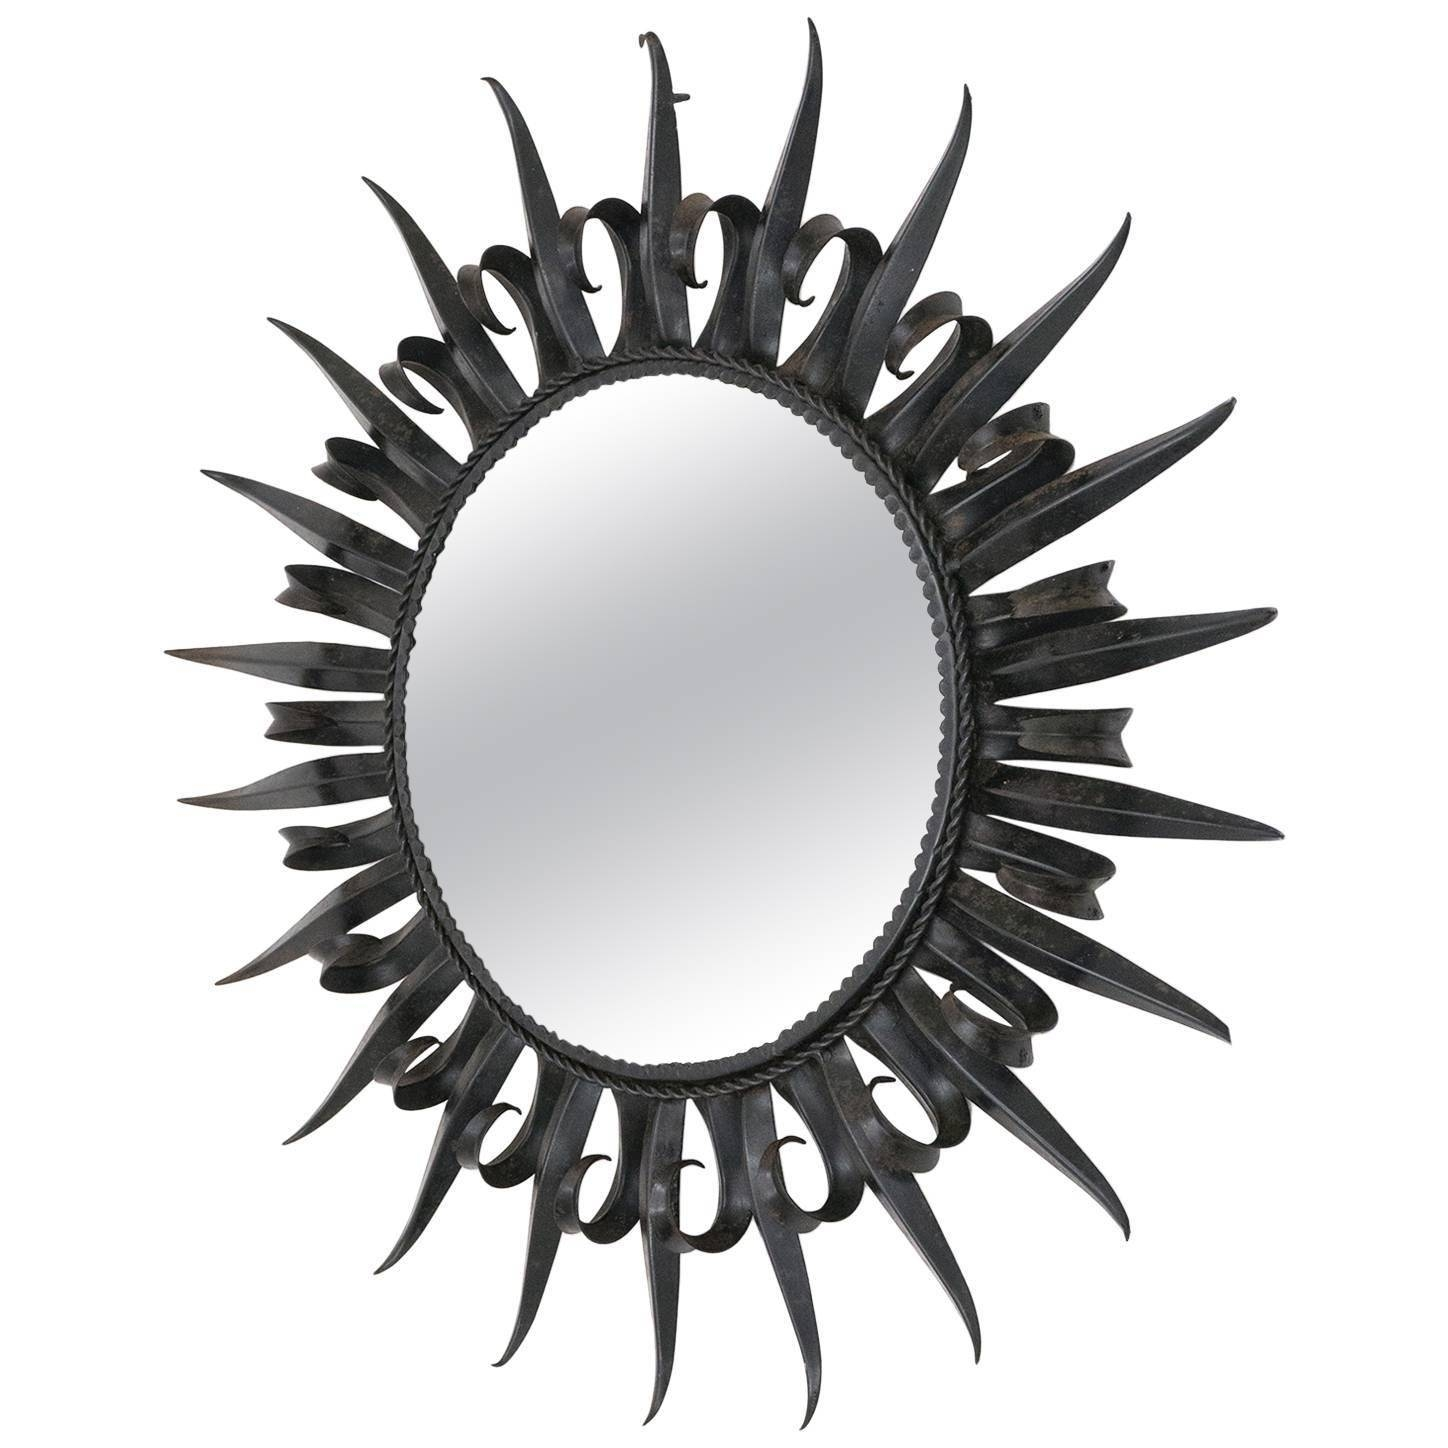 Wrought Iron Wall Mirrors - 72 For Sale At 1Stdibs inside Black Wrought Iron Mirrors (Image 24 of 25)